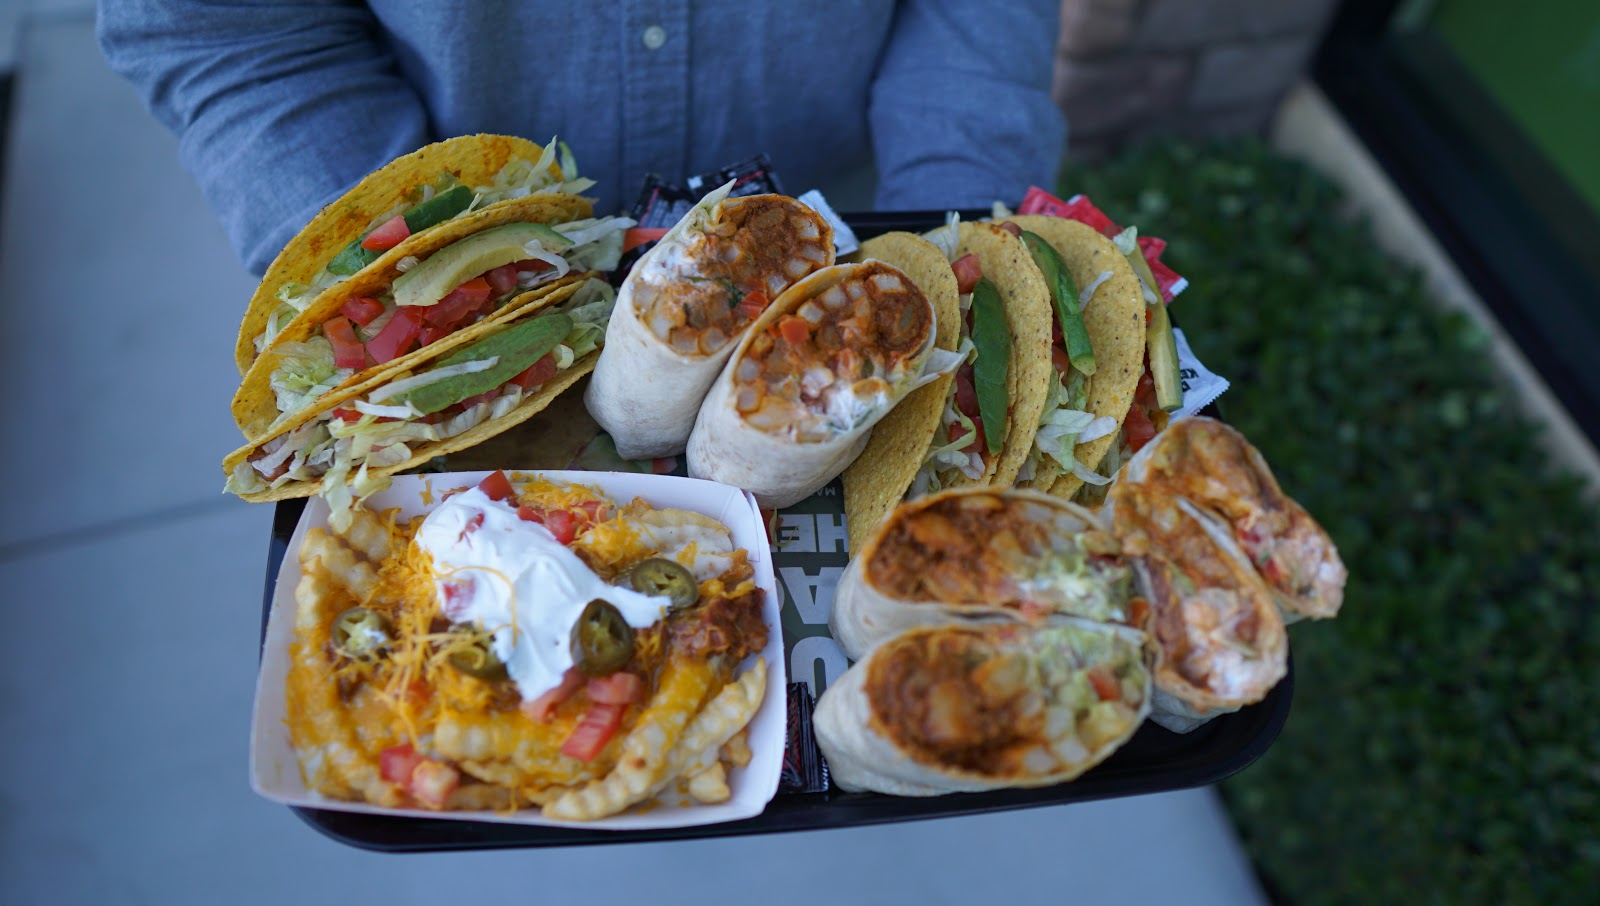 Del Taco's New Beyond Menu is Beyond Imagination!